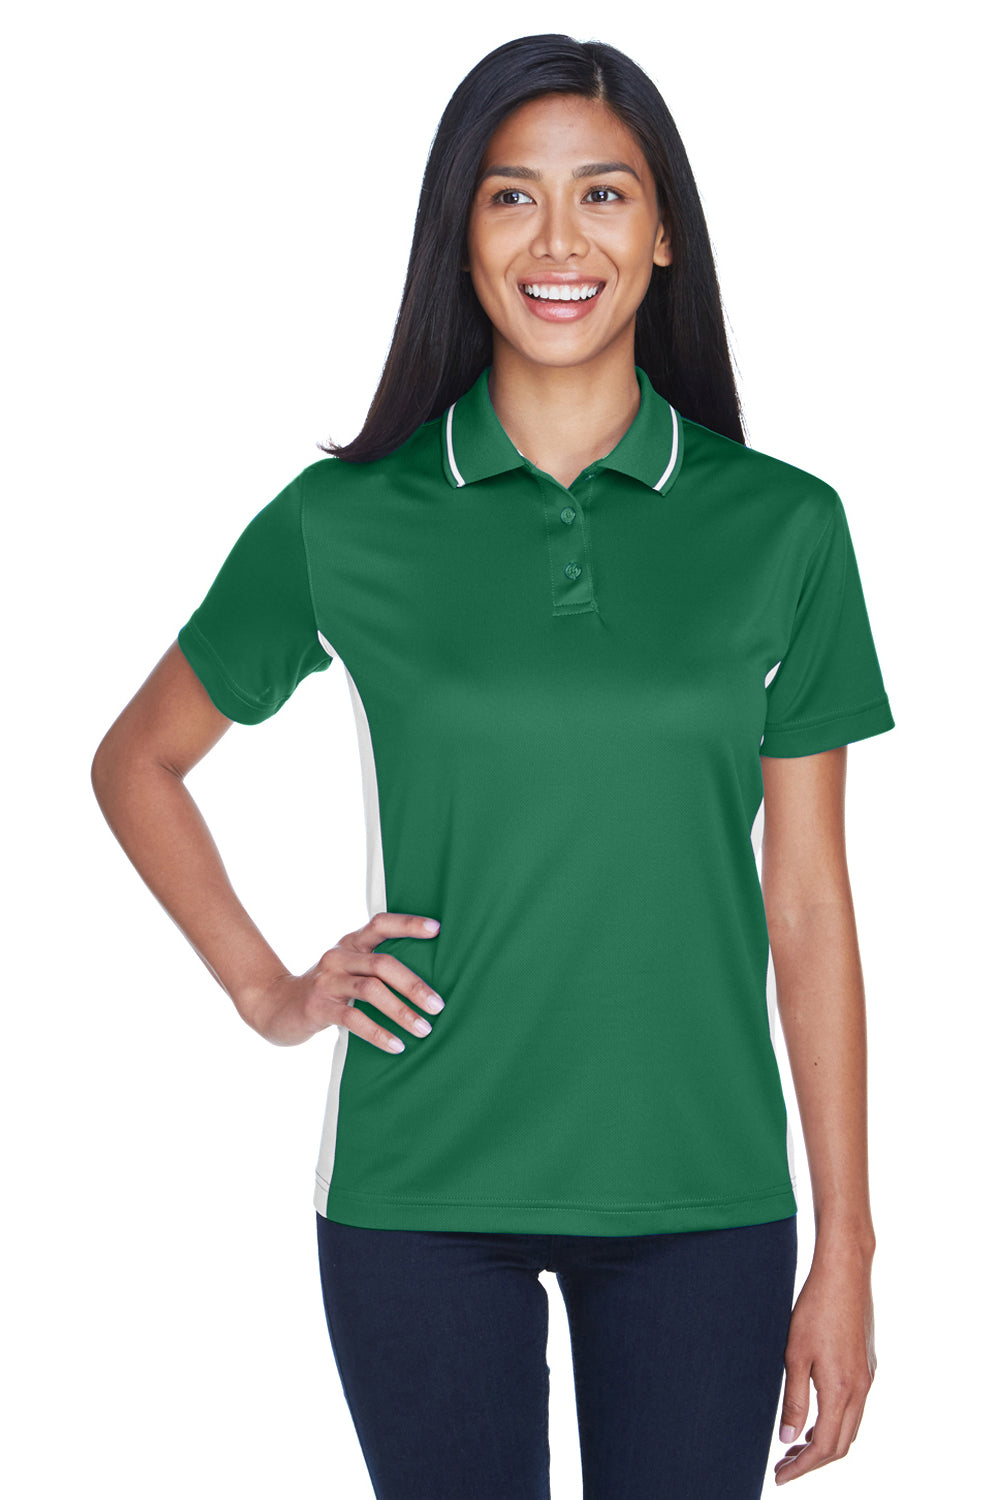 UltraClub 8406L Womens Cool & Dry Moisture Wicking Short Sleeve Polo Shirt Forest Green/White Front